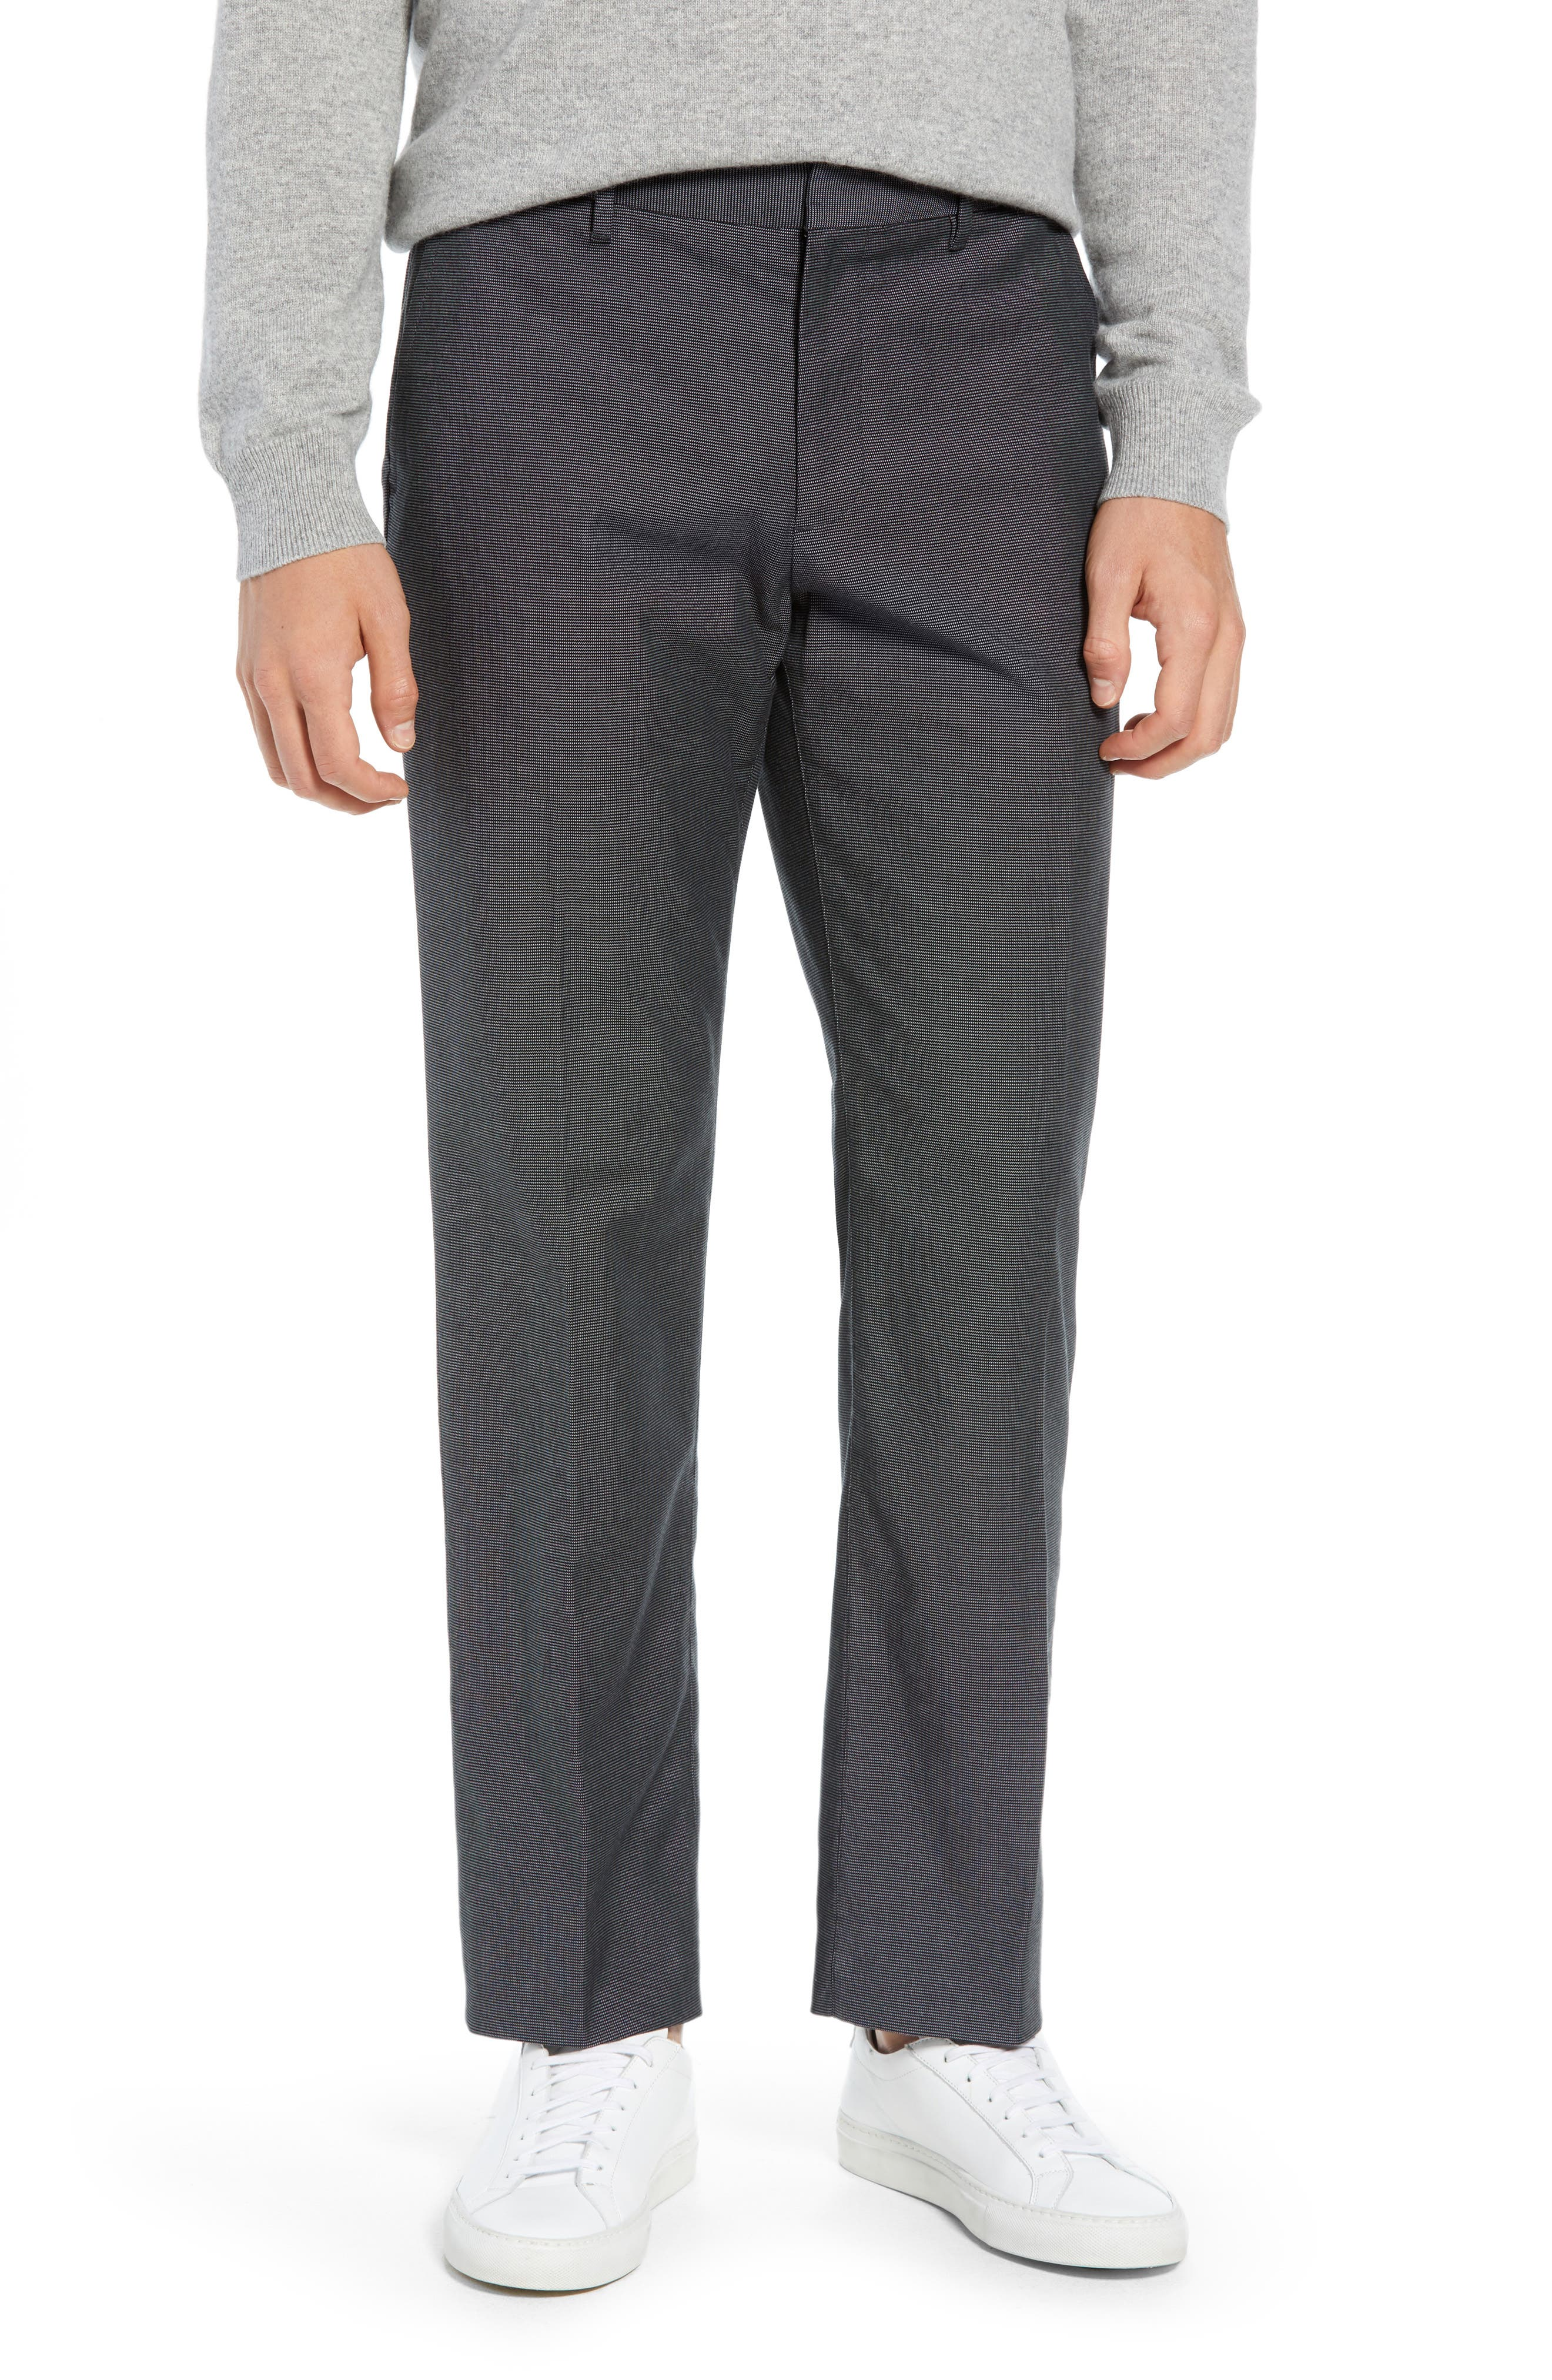 Weekday Warrior Straight Leg Stretch Dress Pants,                         Main,                         color, TUESDAY CHARCOAL